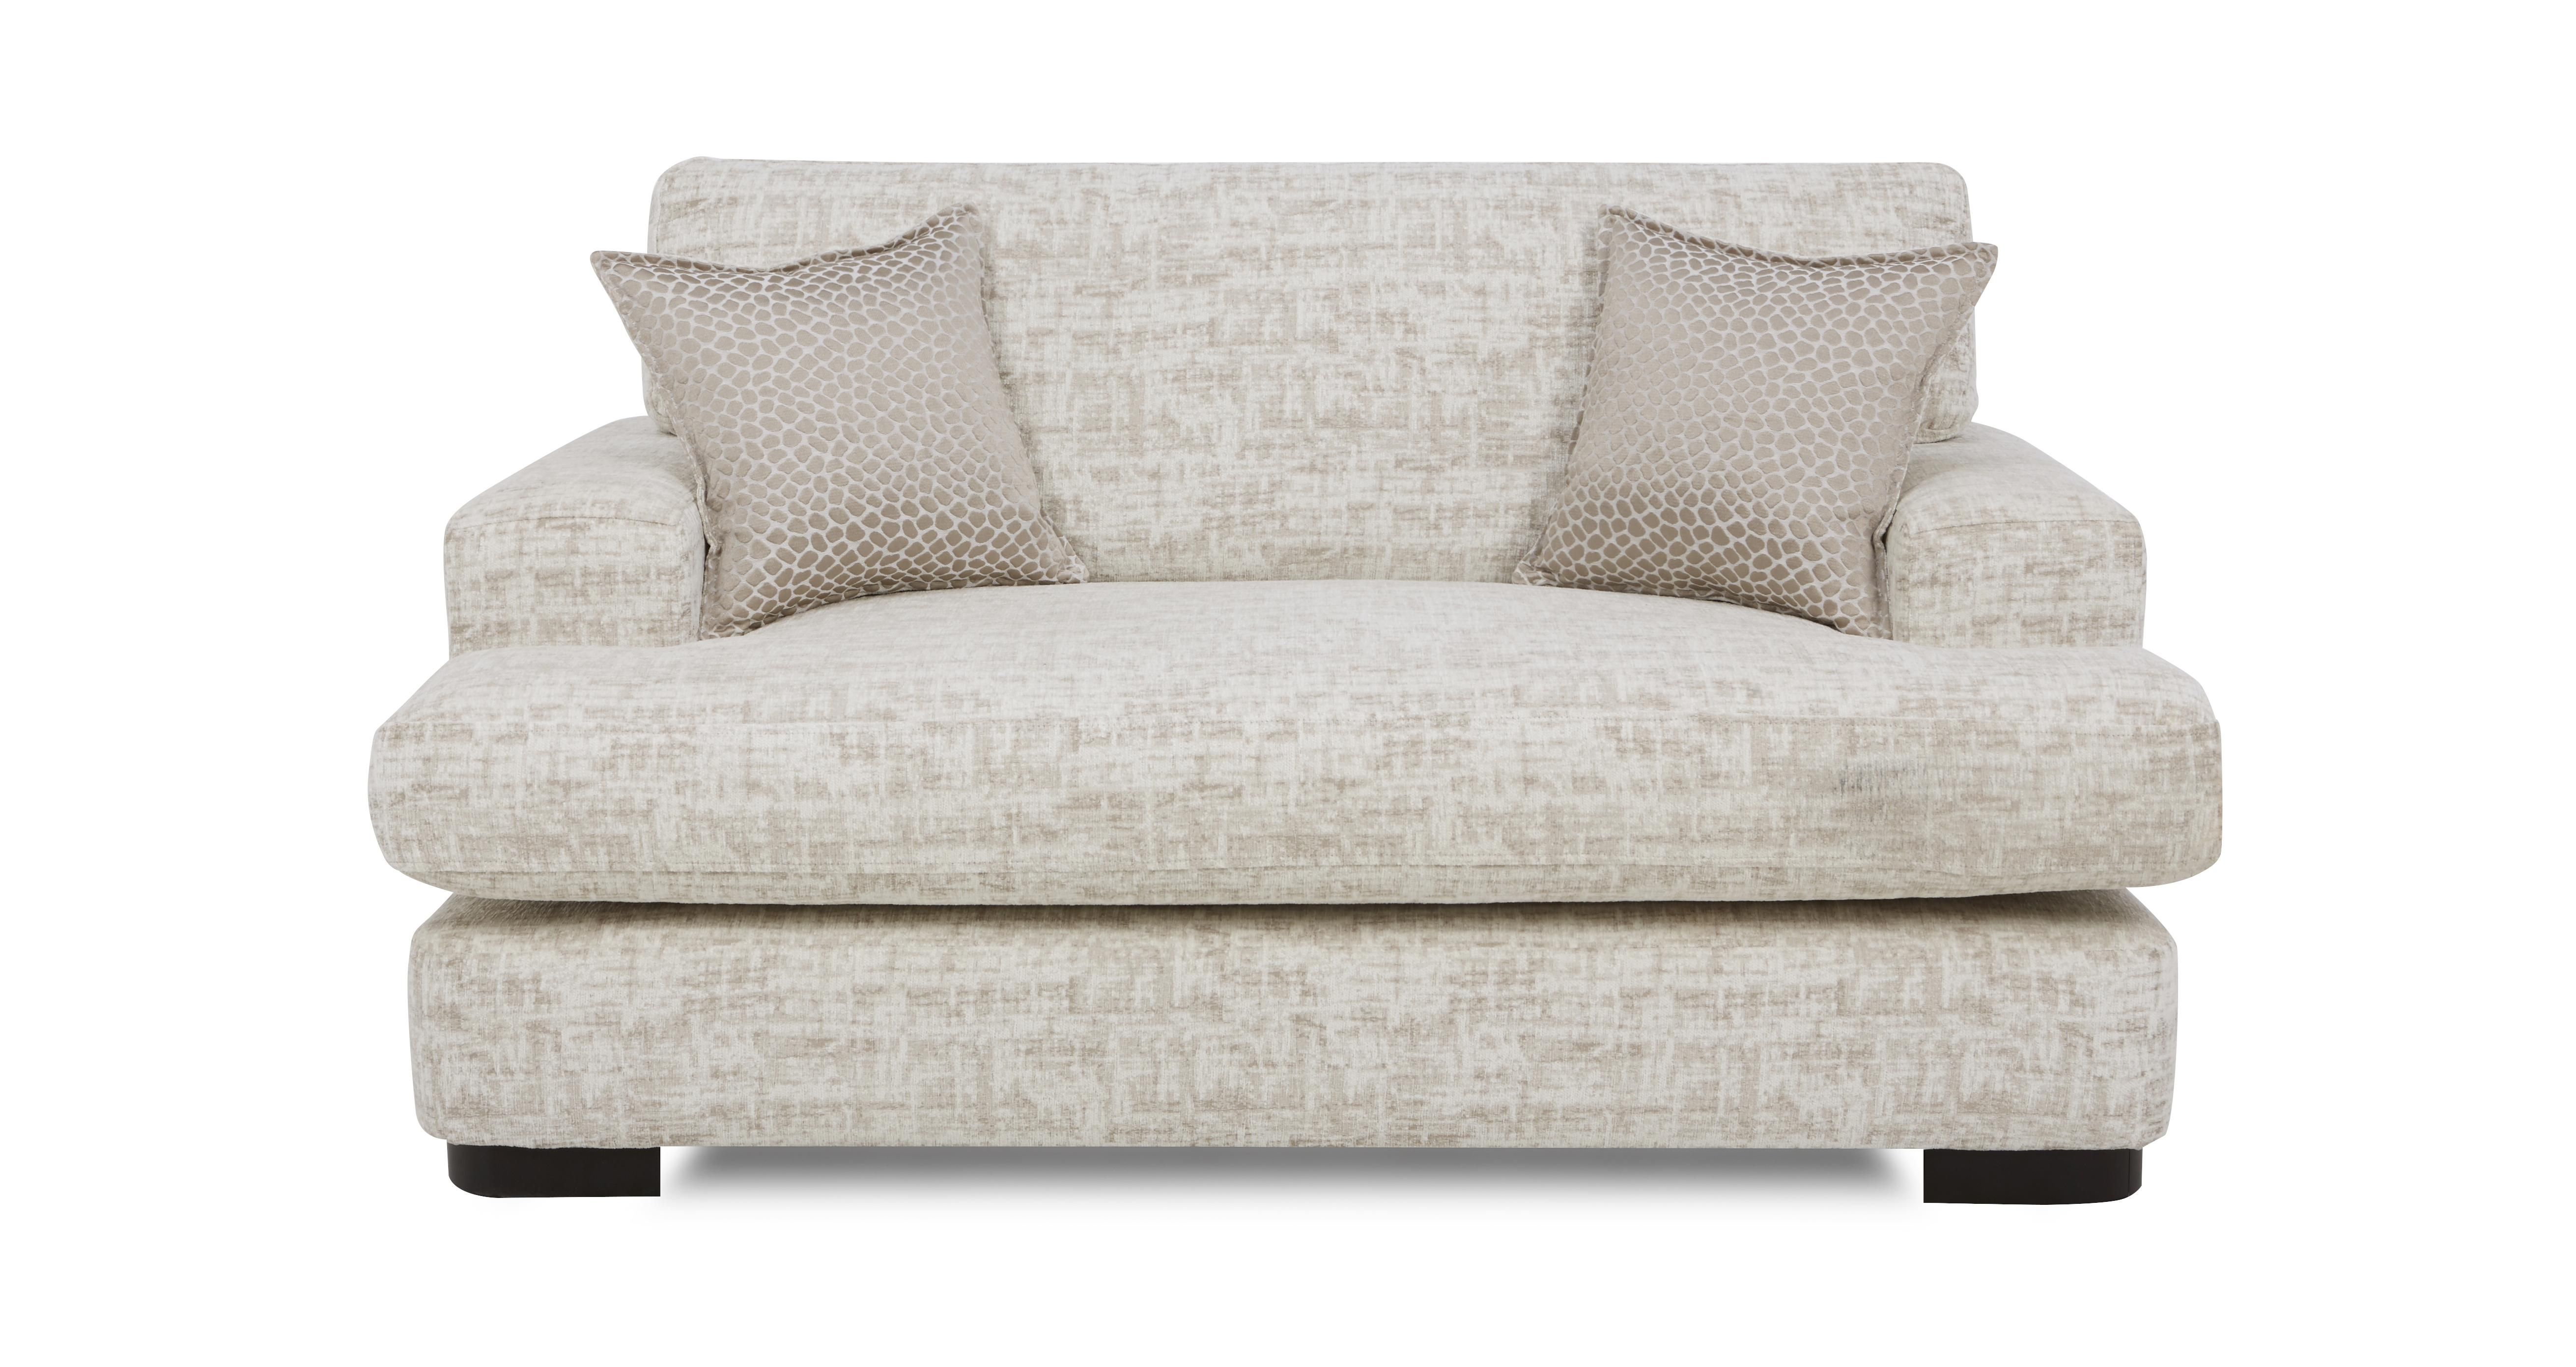 Indulge Formal Back Cuddler Sofa DFS Ireland